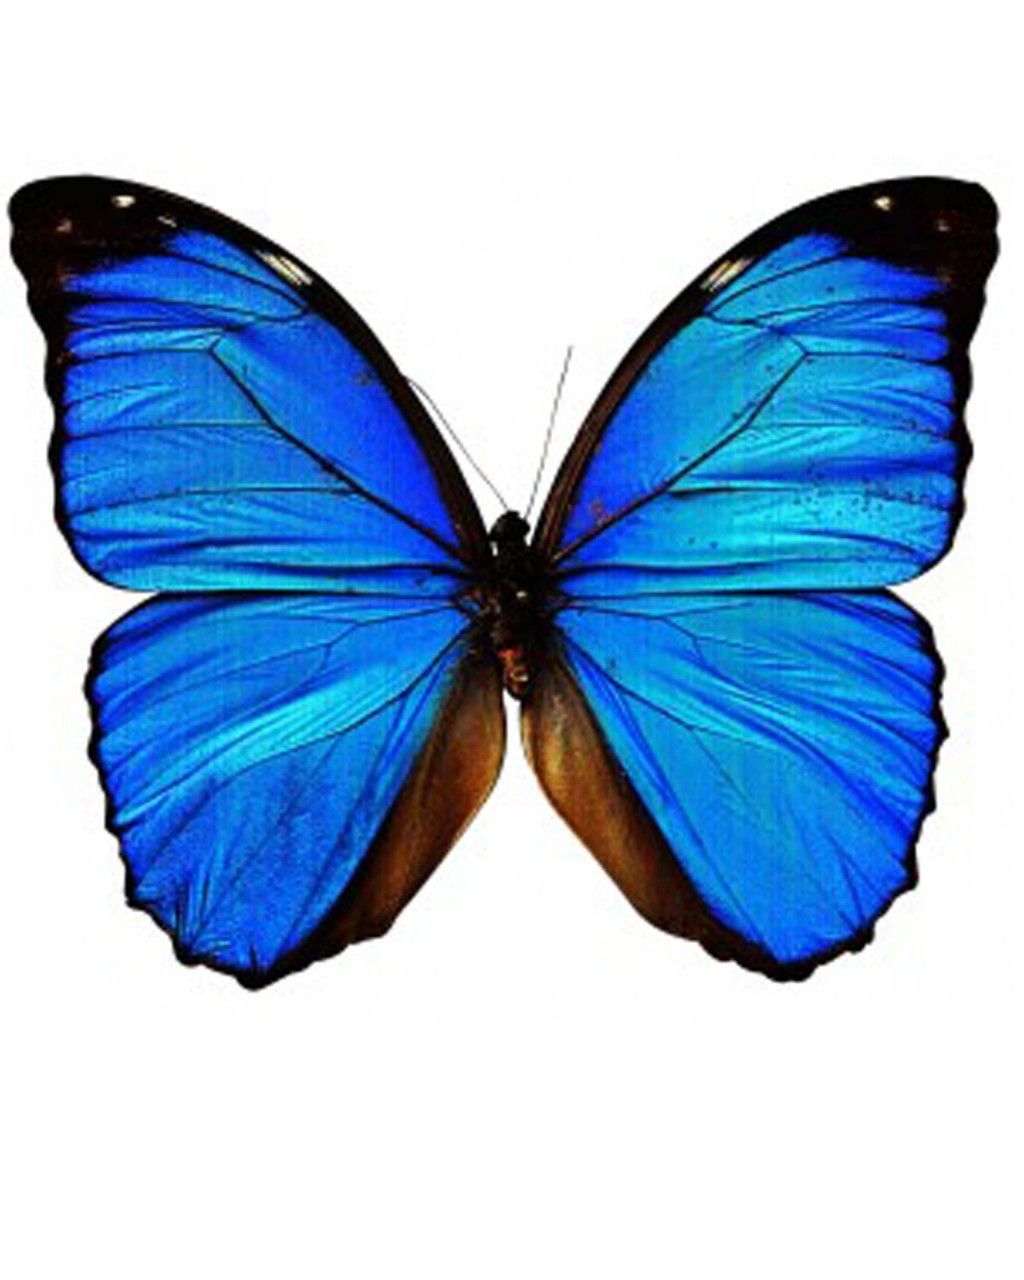 INKWEAR Blue Butterfly Tattoo In Love With Fashion | Free ...